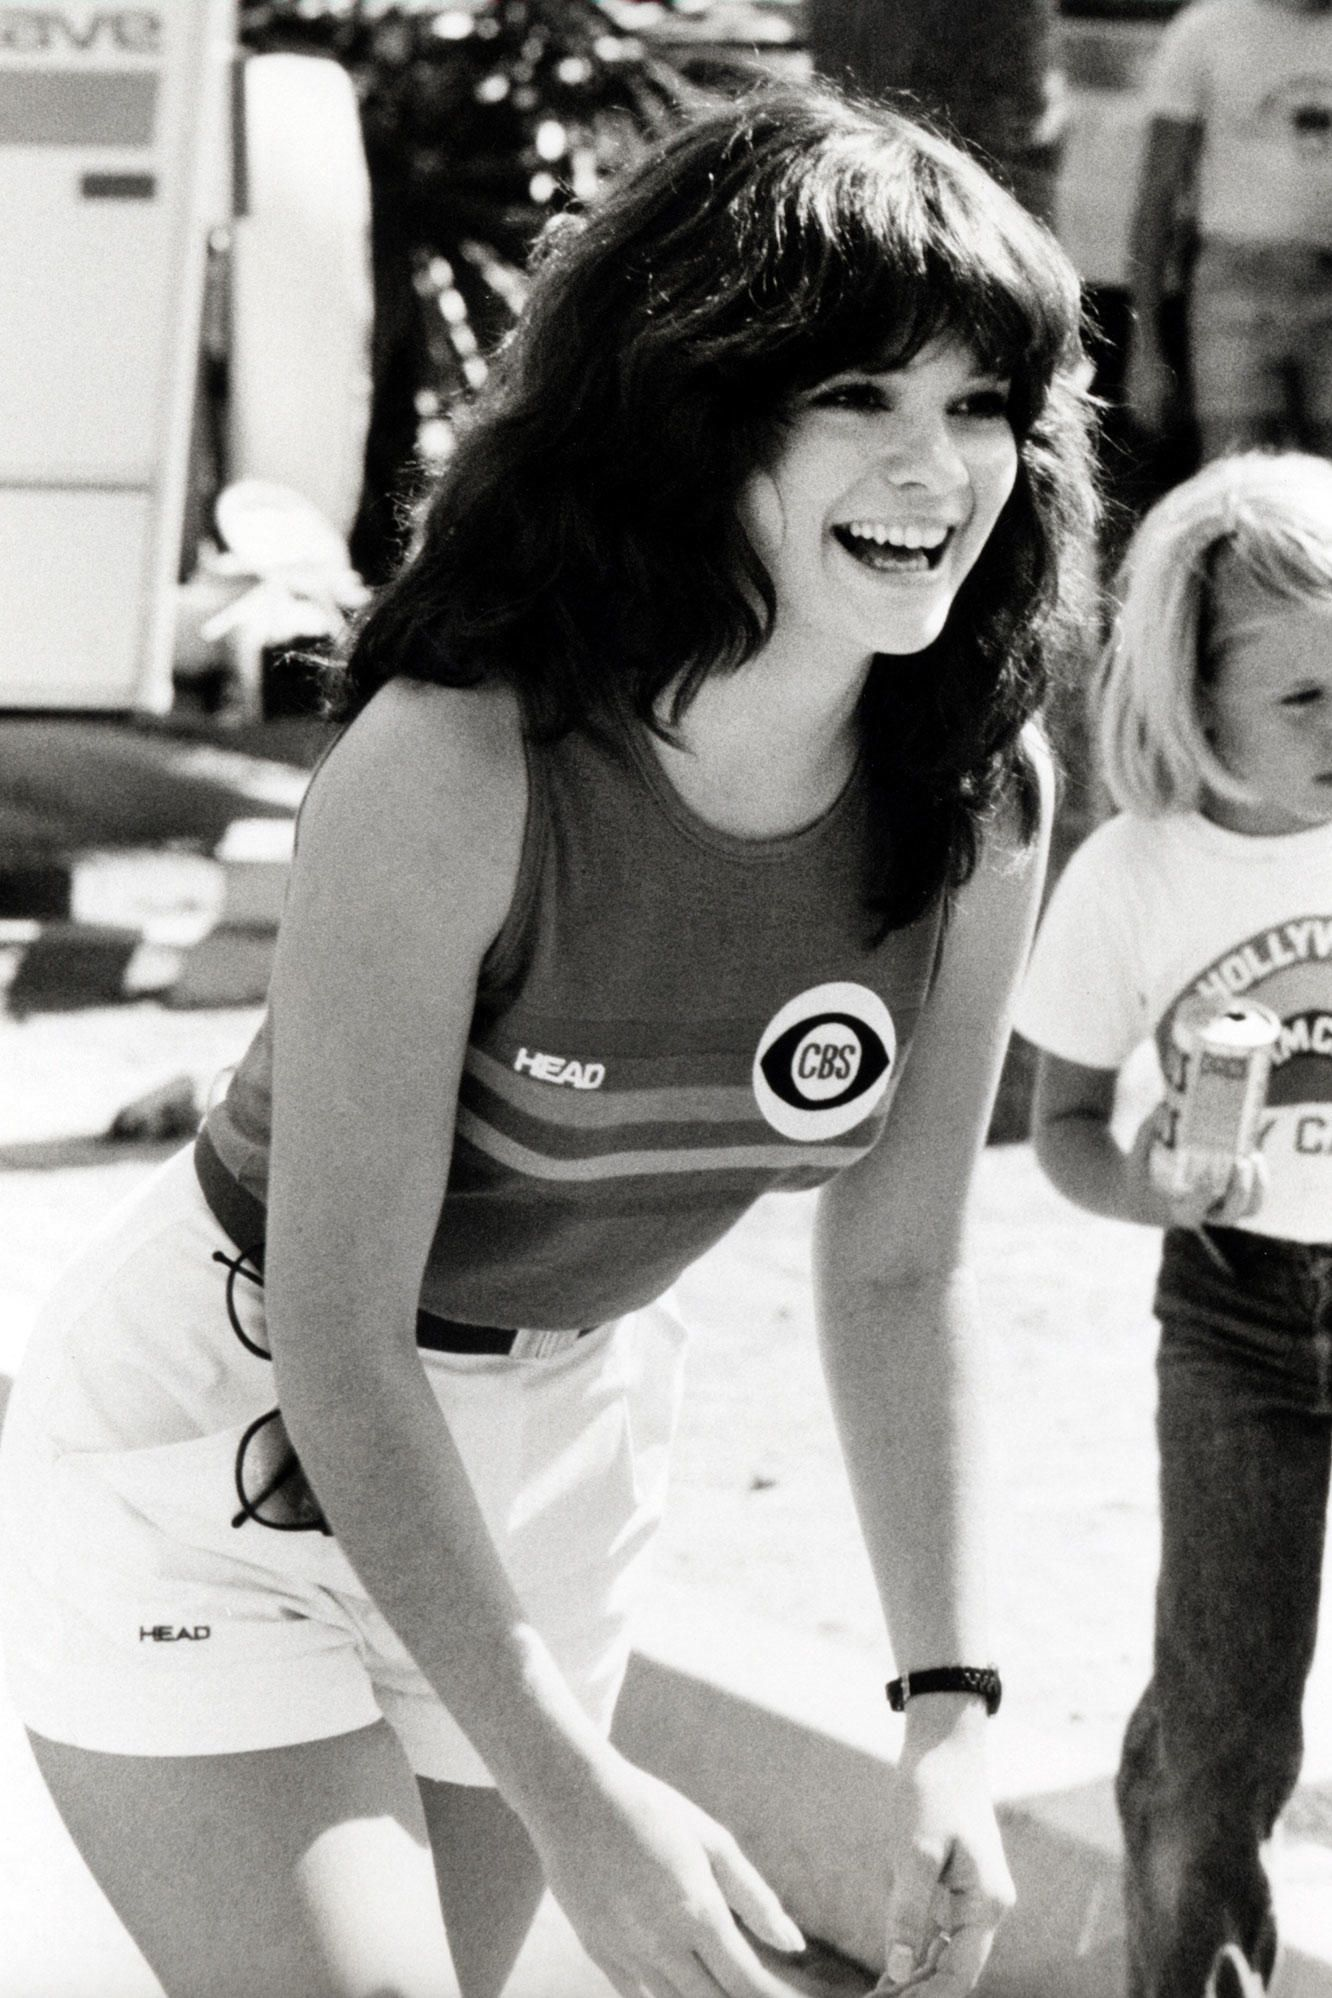 Valerie Bertinelli Battle Of The Network Stars 1979 Imgur Valerie Bertinelli Groovy History Famous Faces